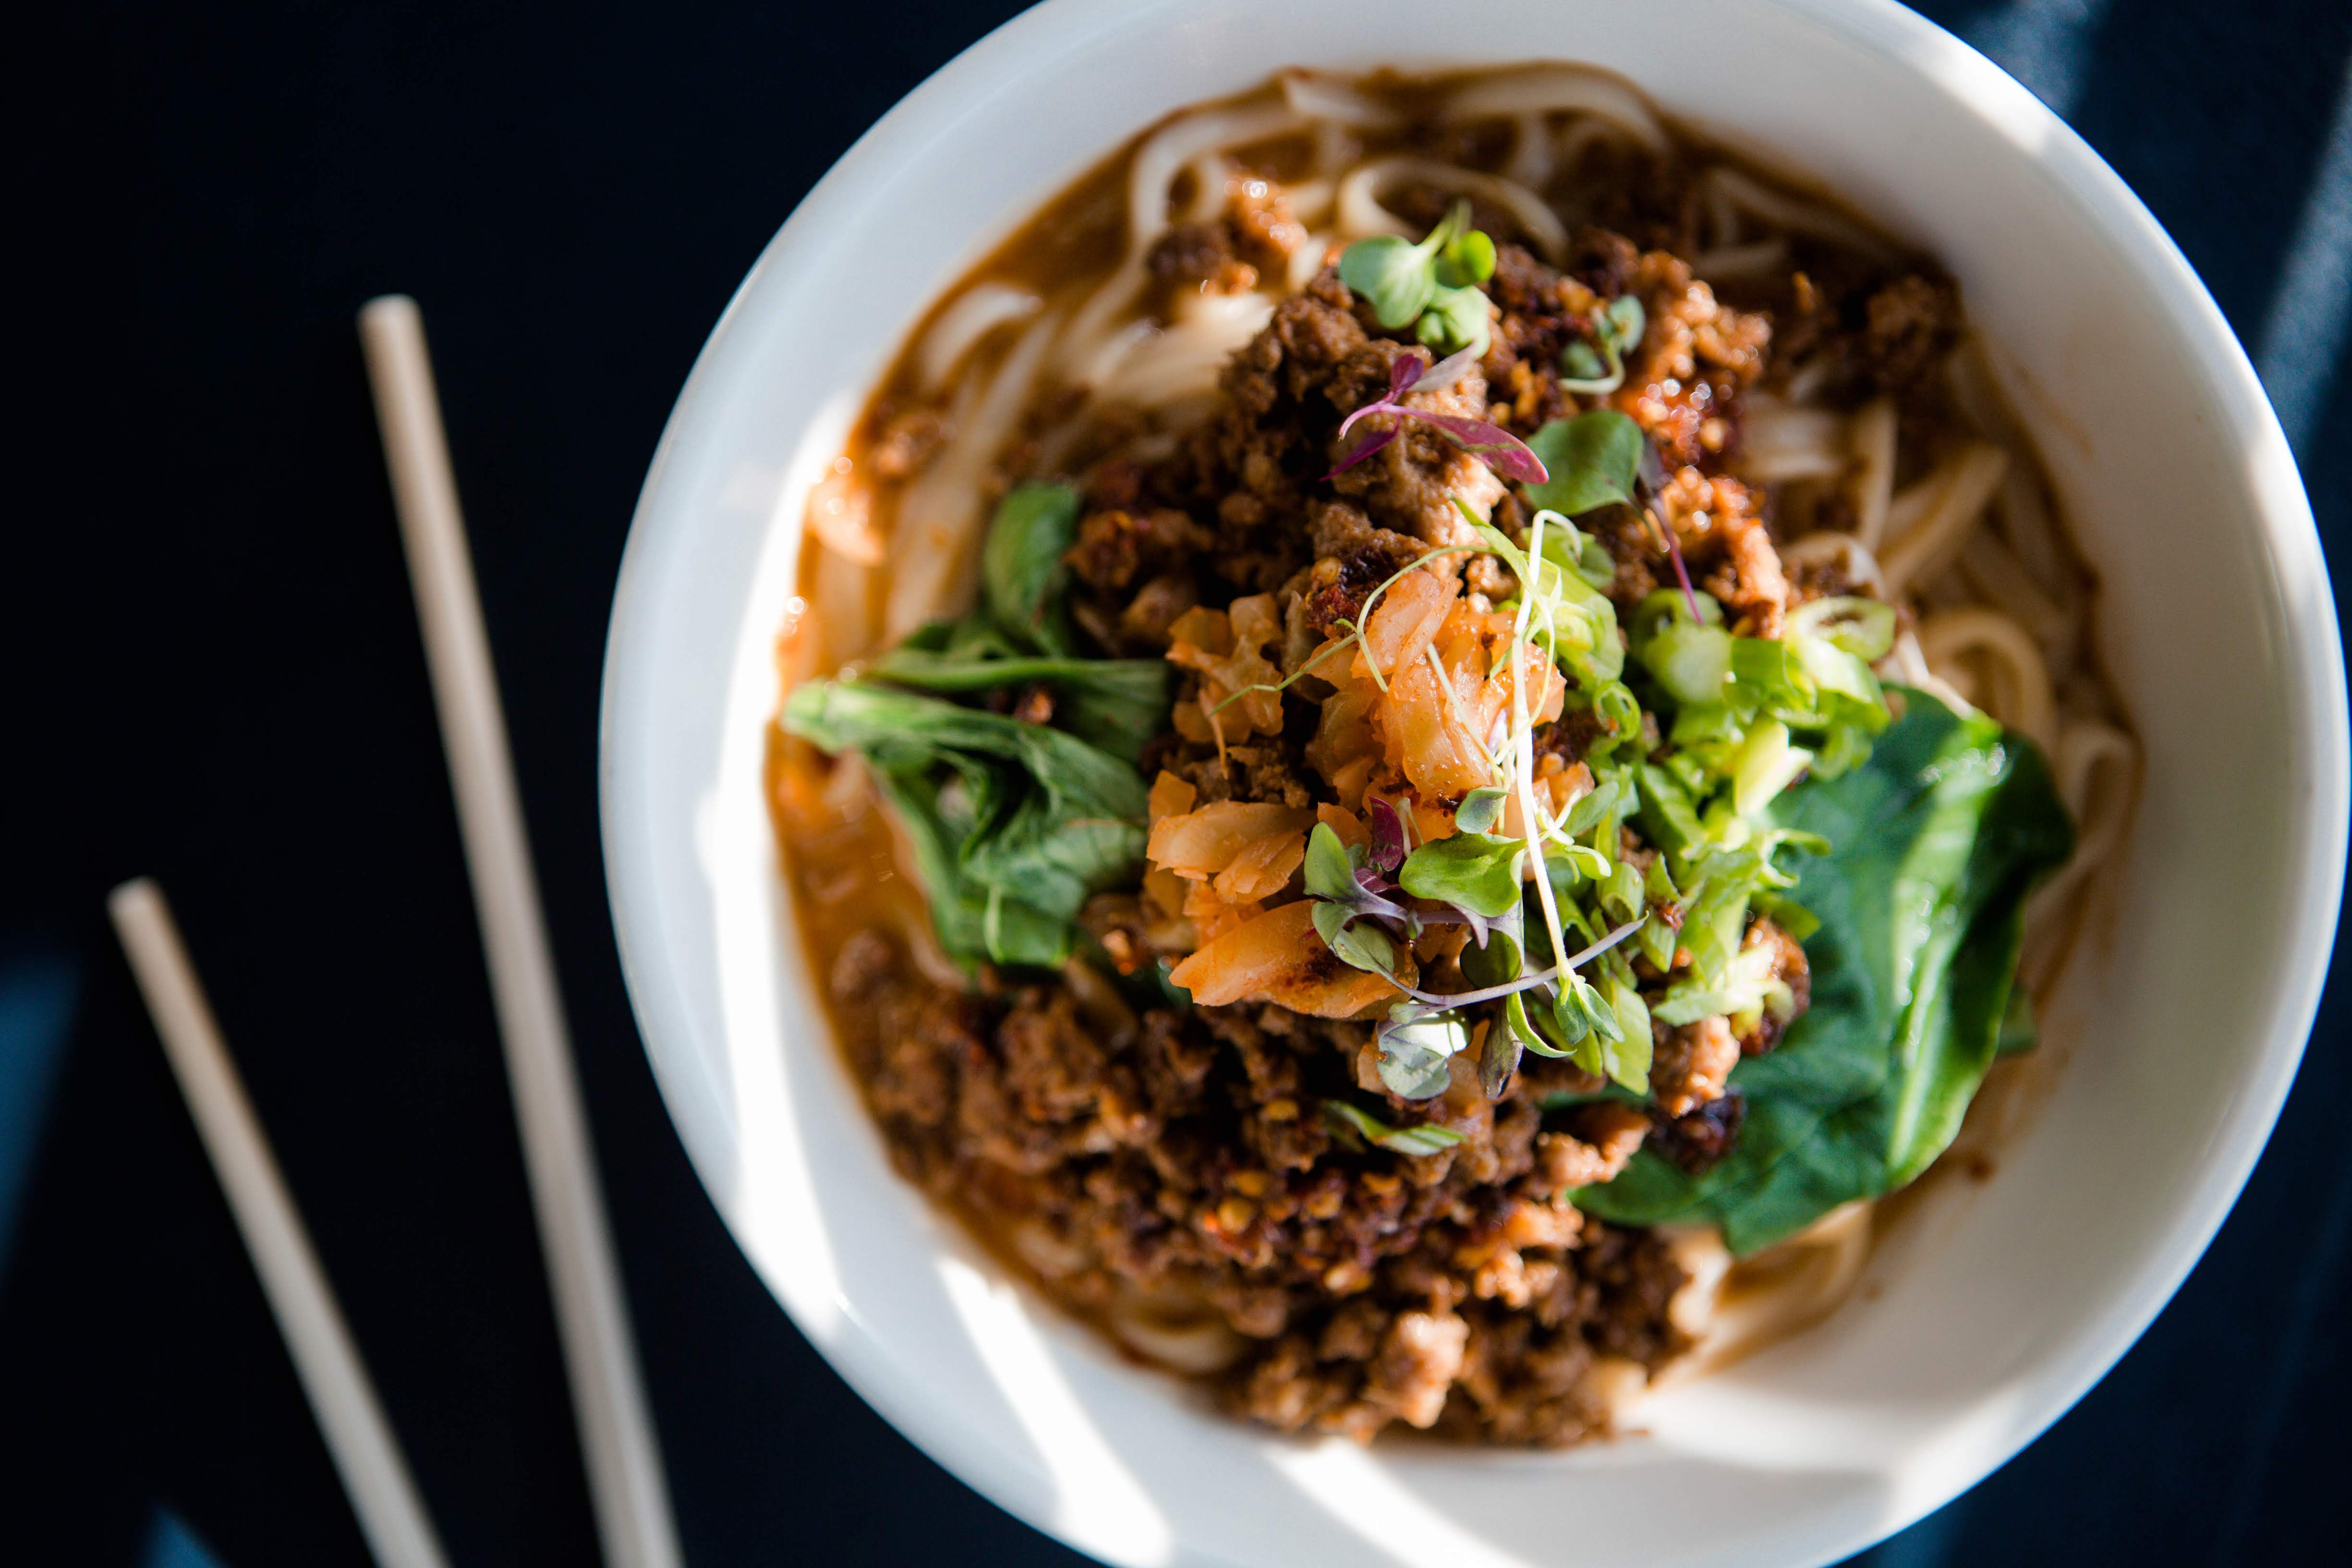 Dan Dan noodles in a bowl at Lionhead, with chopsticks to the left.